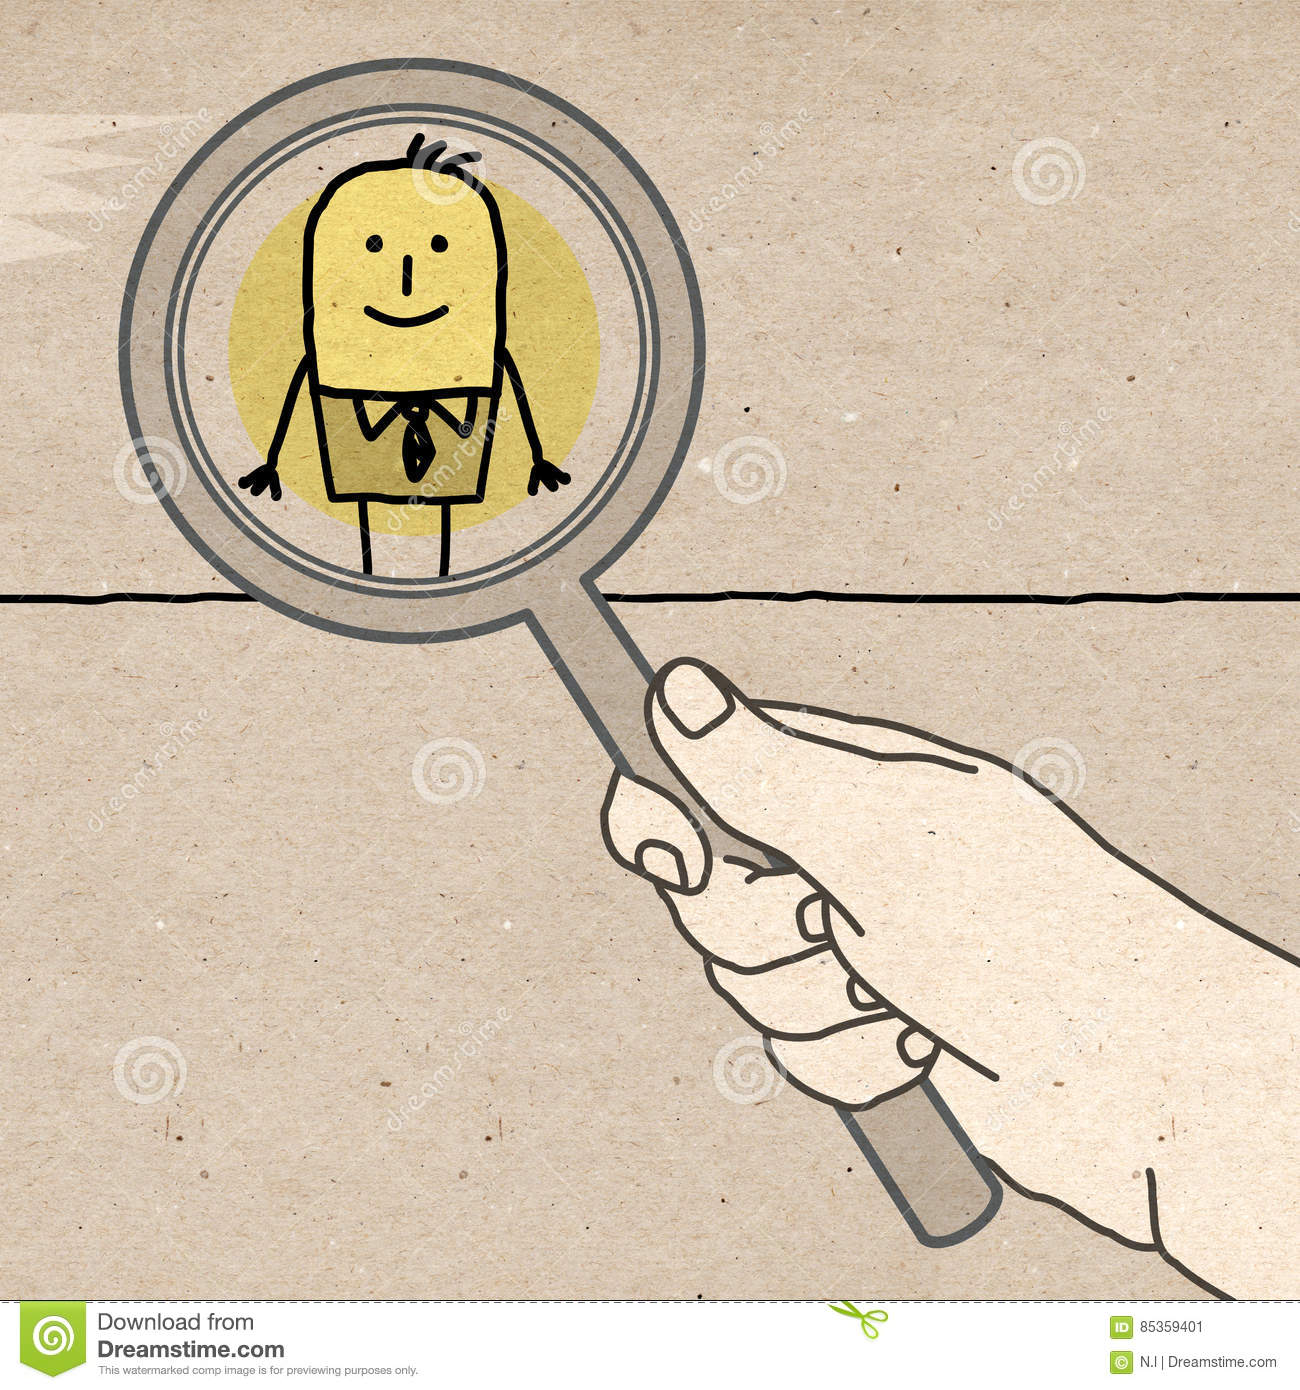 Big Hand - supervising and magnifying